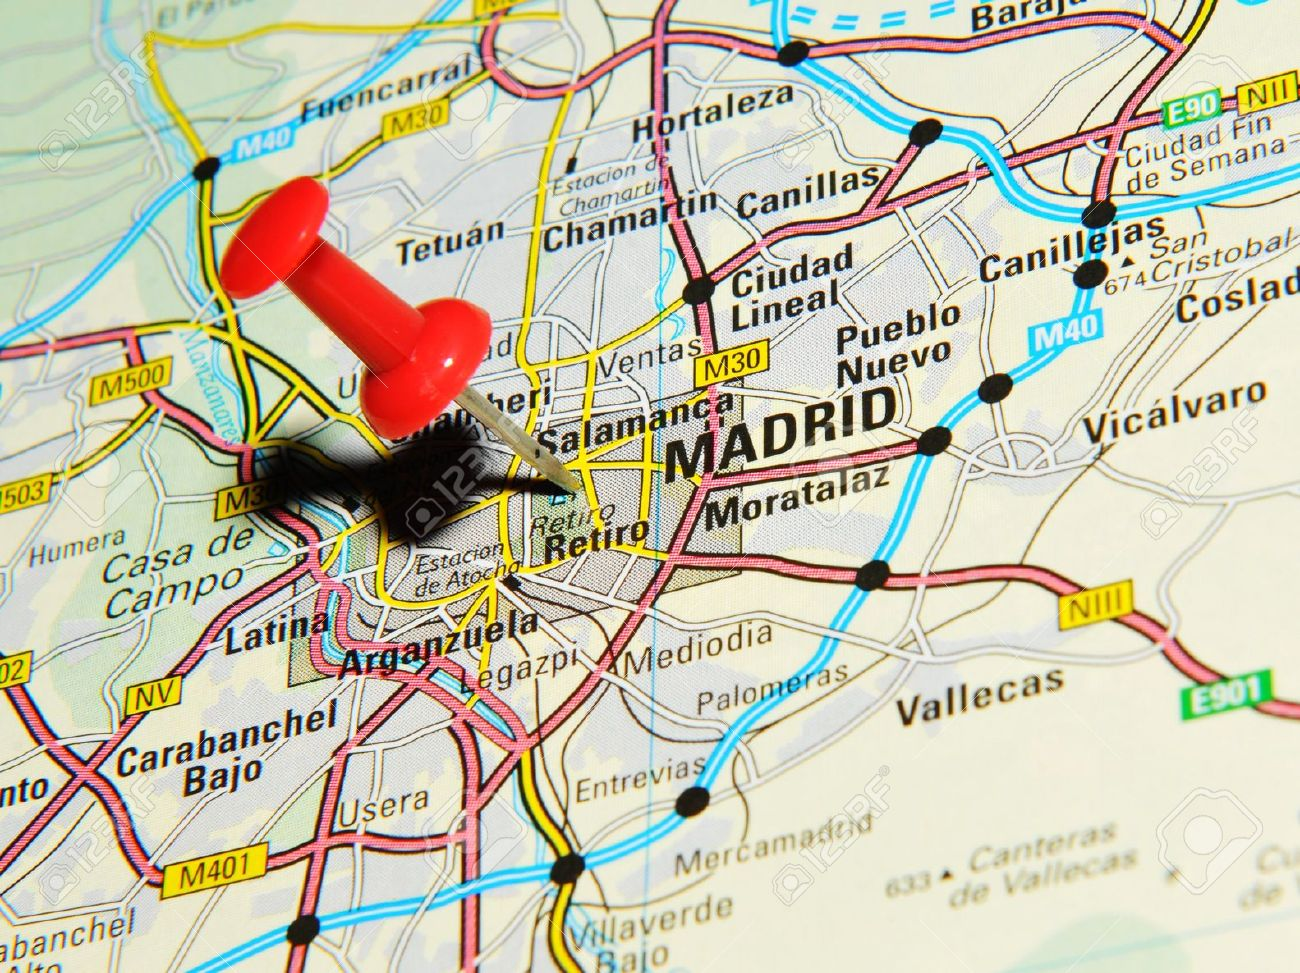 London, UK - 13 June, 2012: Madrid, Spain marked with red pushpin on Europe map. - 14515034